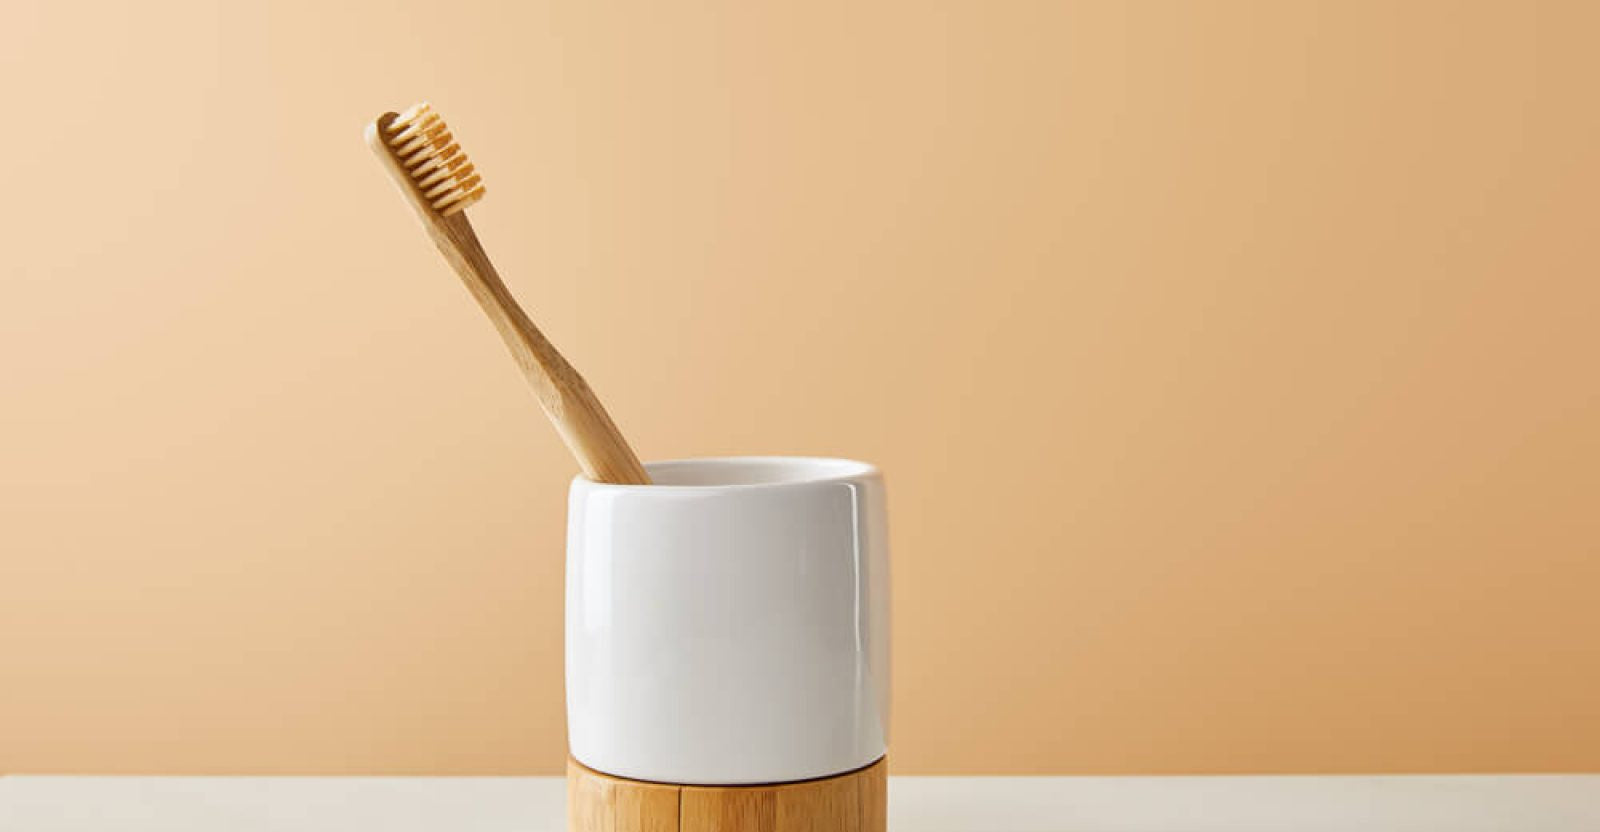 How To: Care For A Bamboo Toothbrush Properly